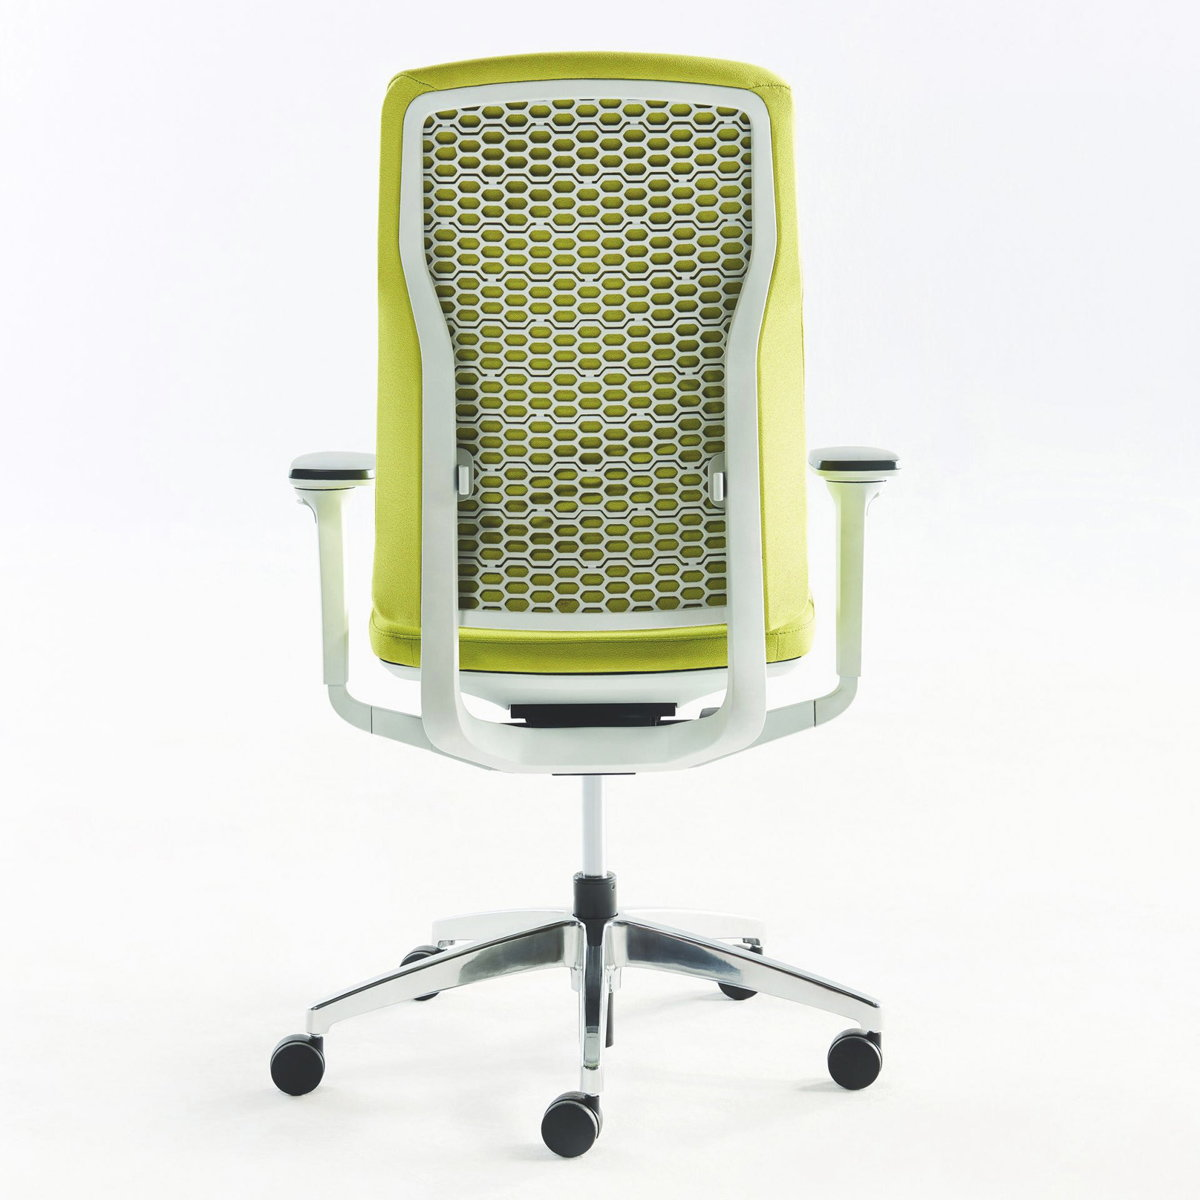 Teknion Around Task Chair by Justus Kolberg